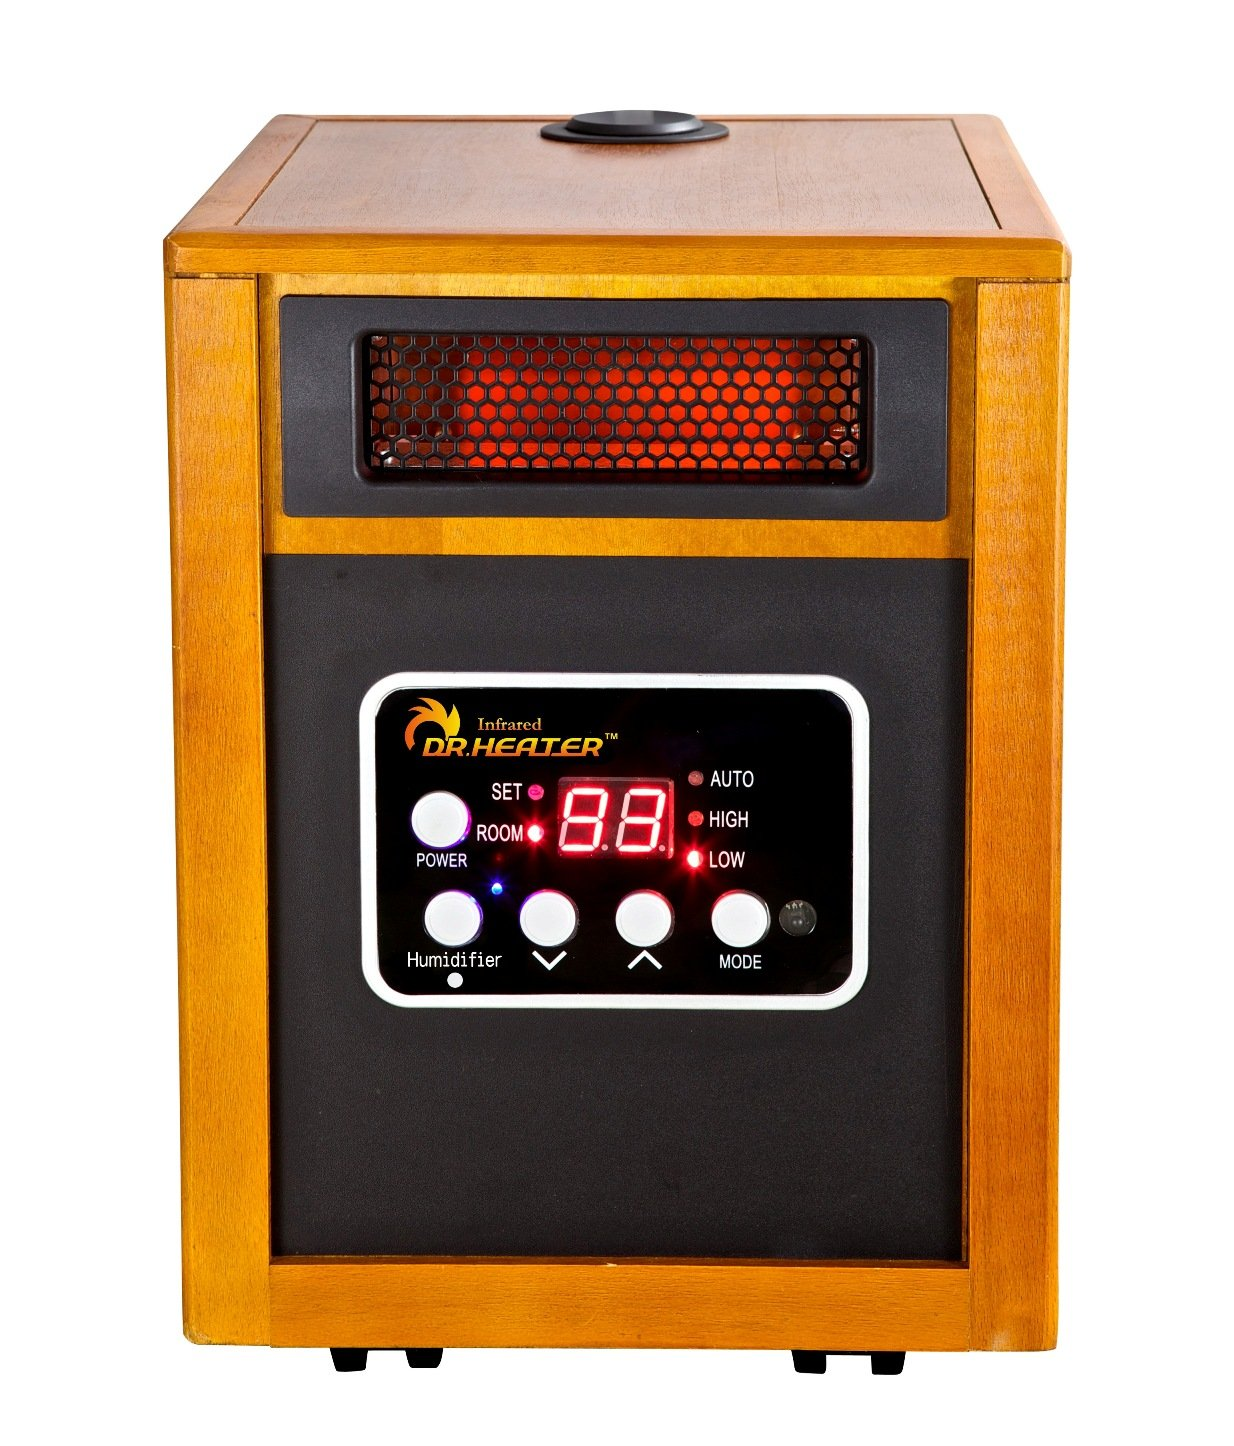 Dr. Infrared Heater Portable Space Heater with Humidifier, 1500-Watt Review